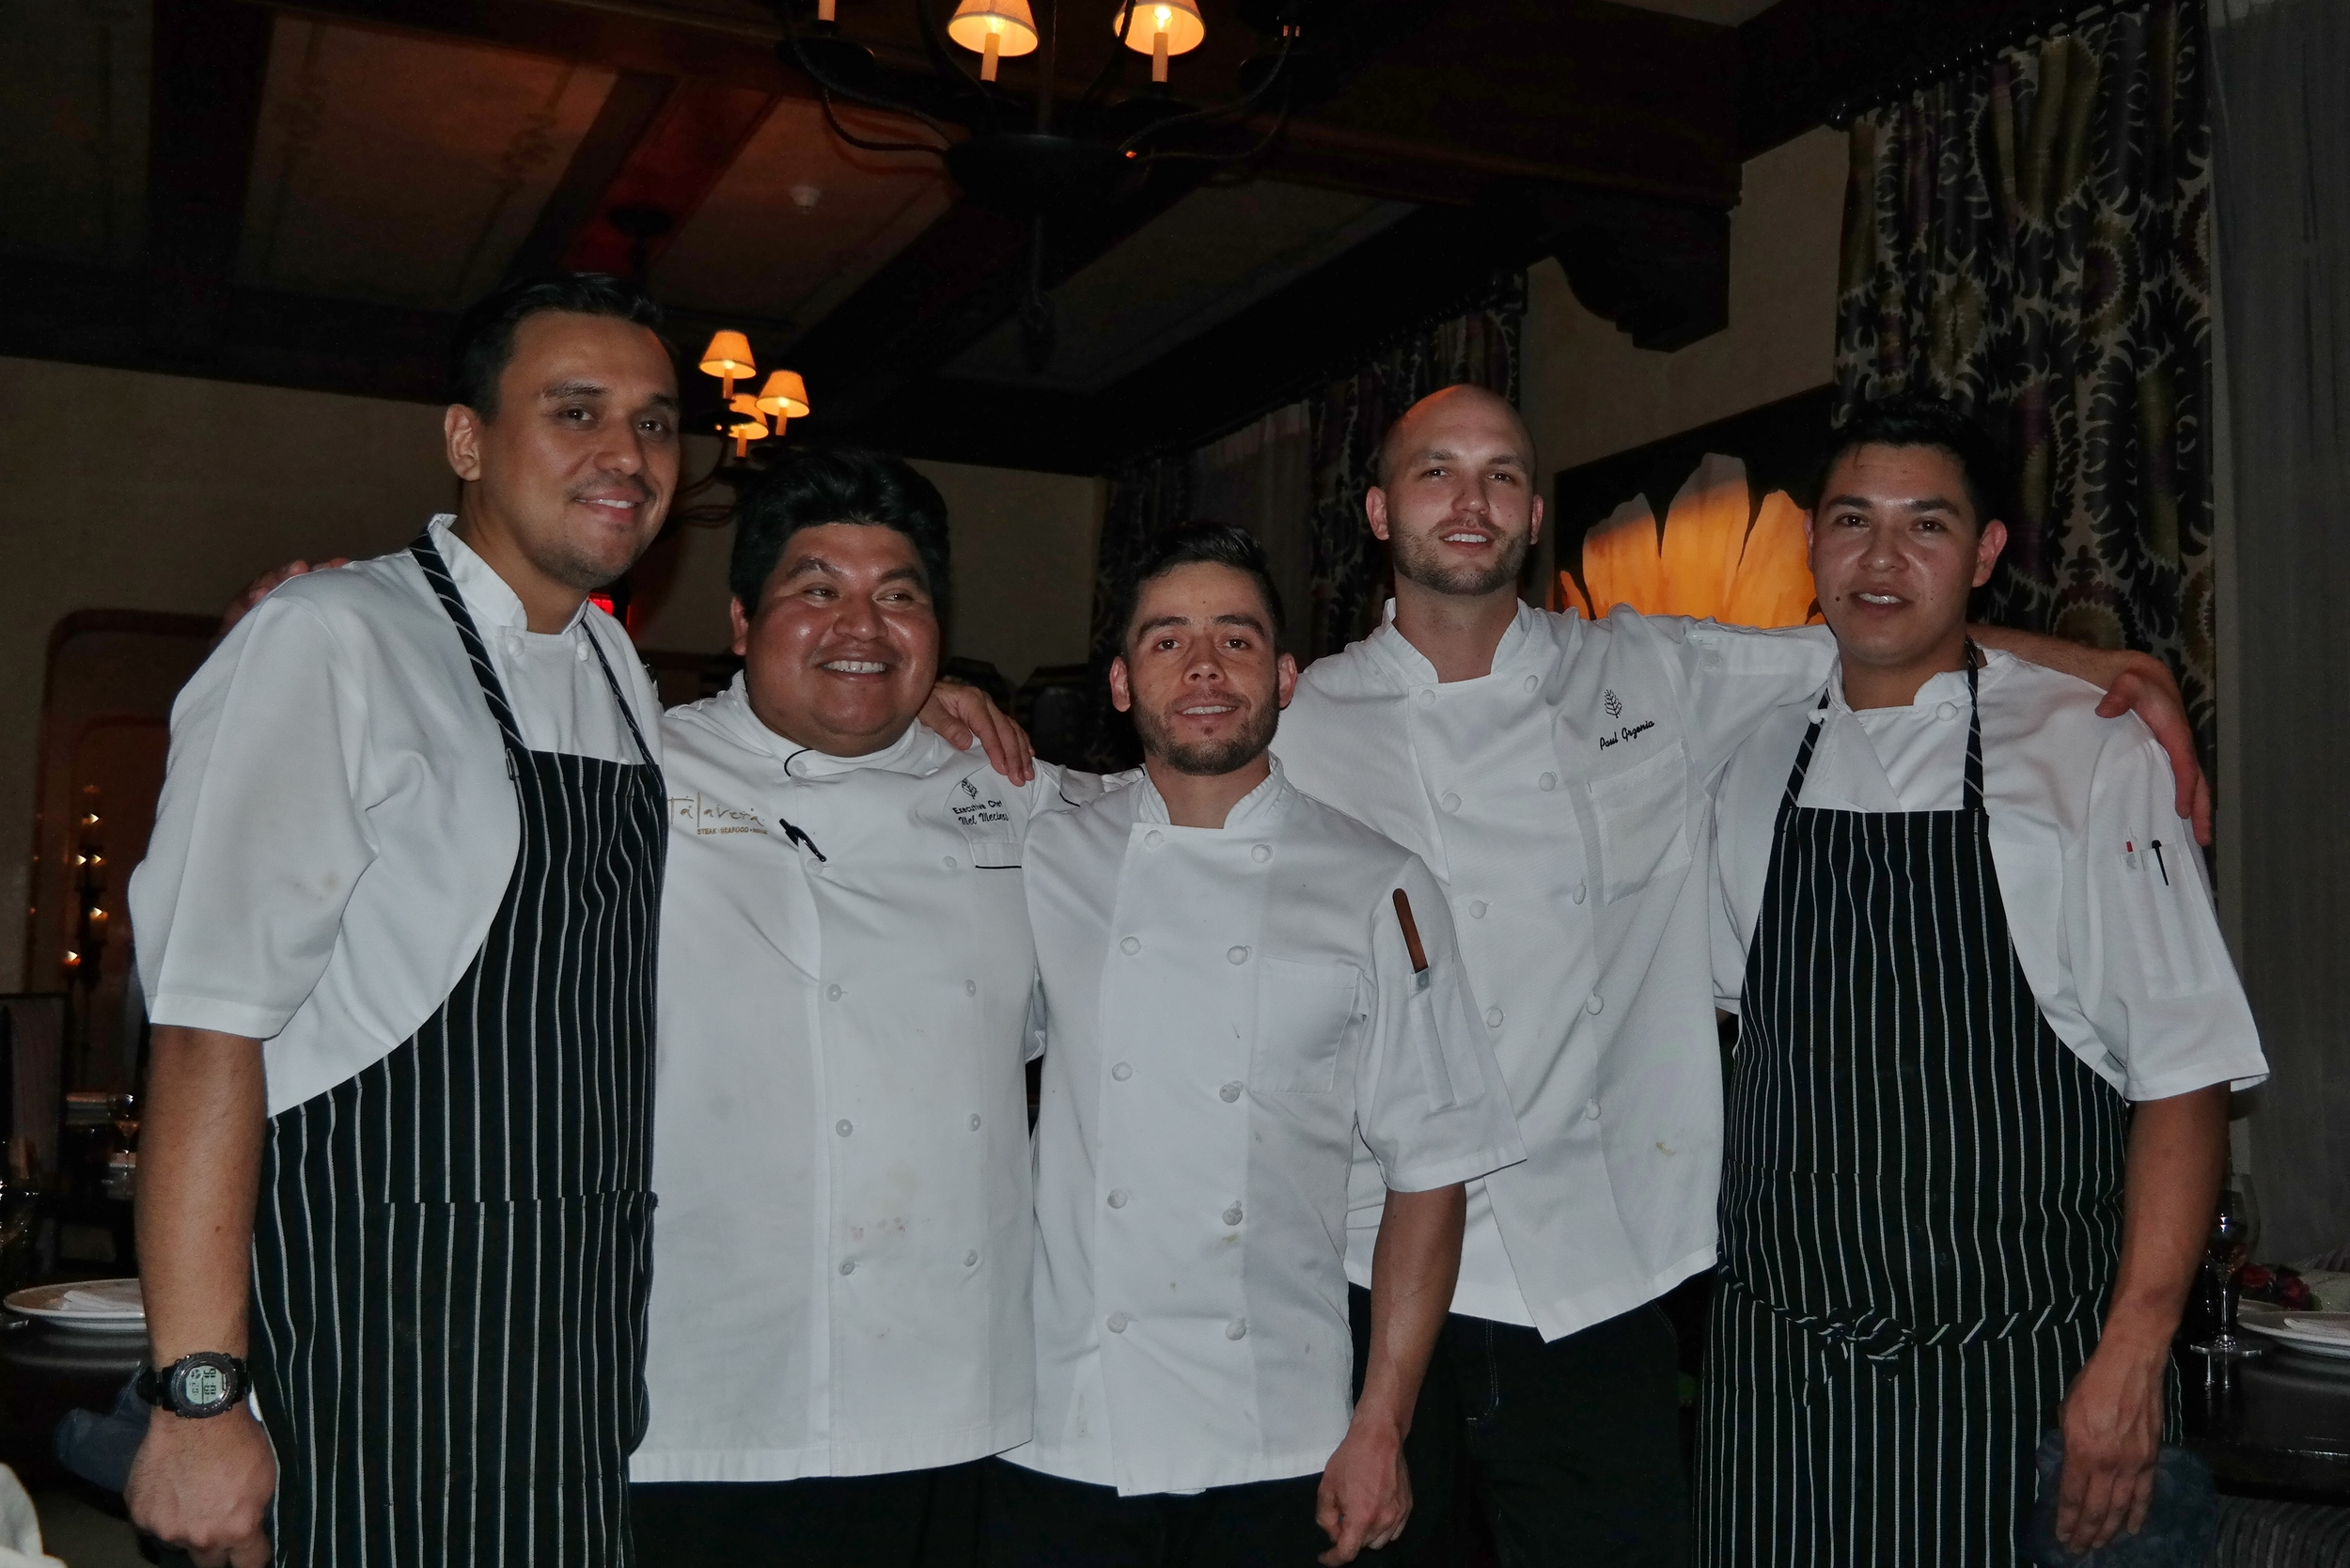 Chef Mecinas and his crew!